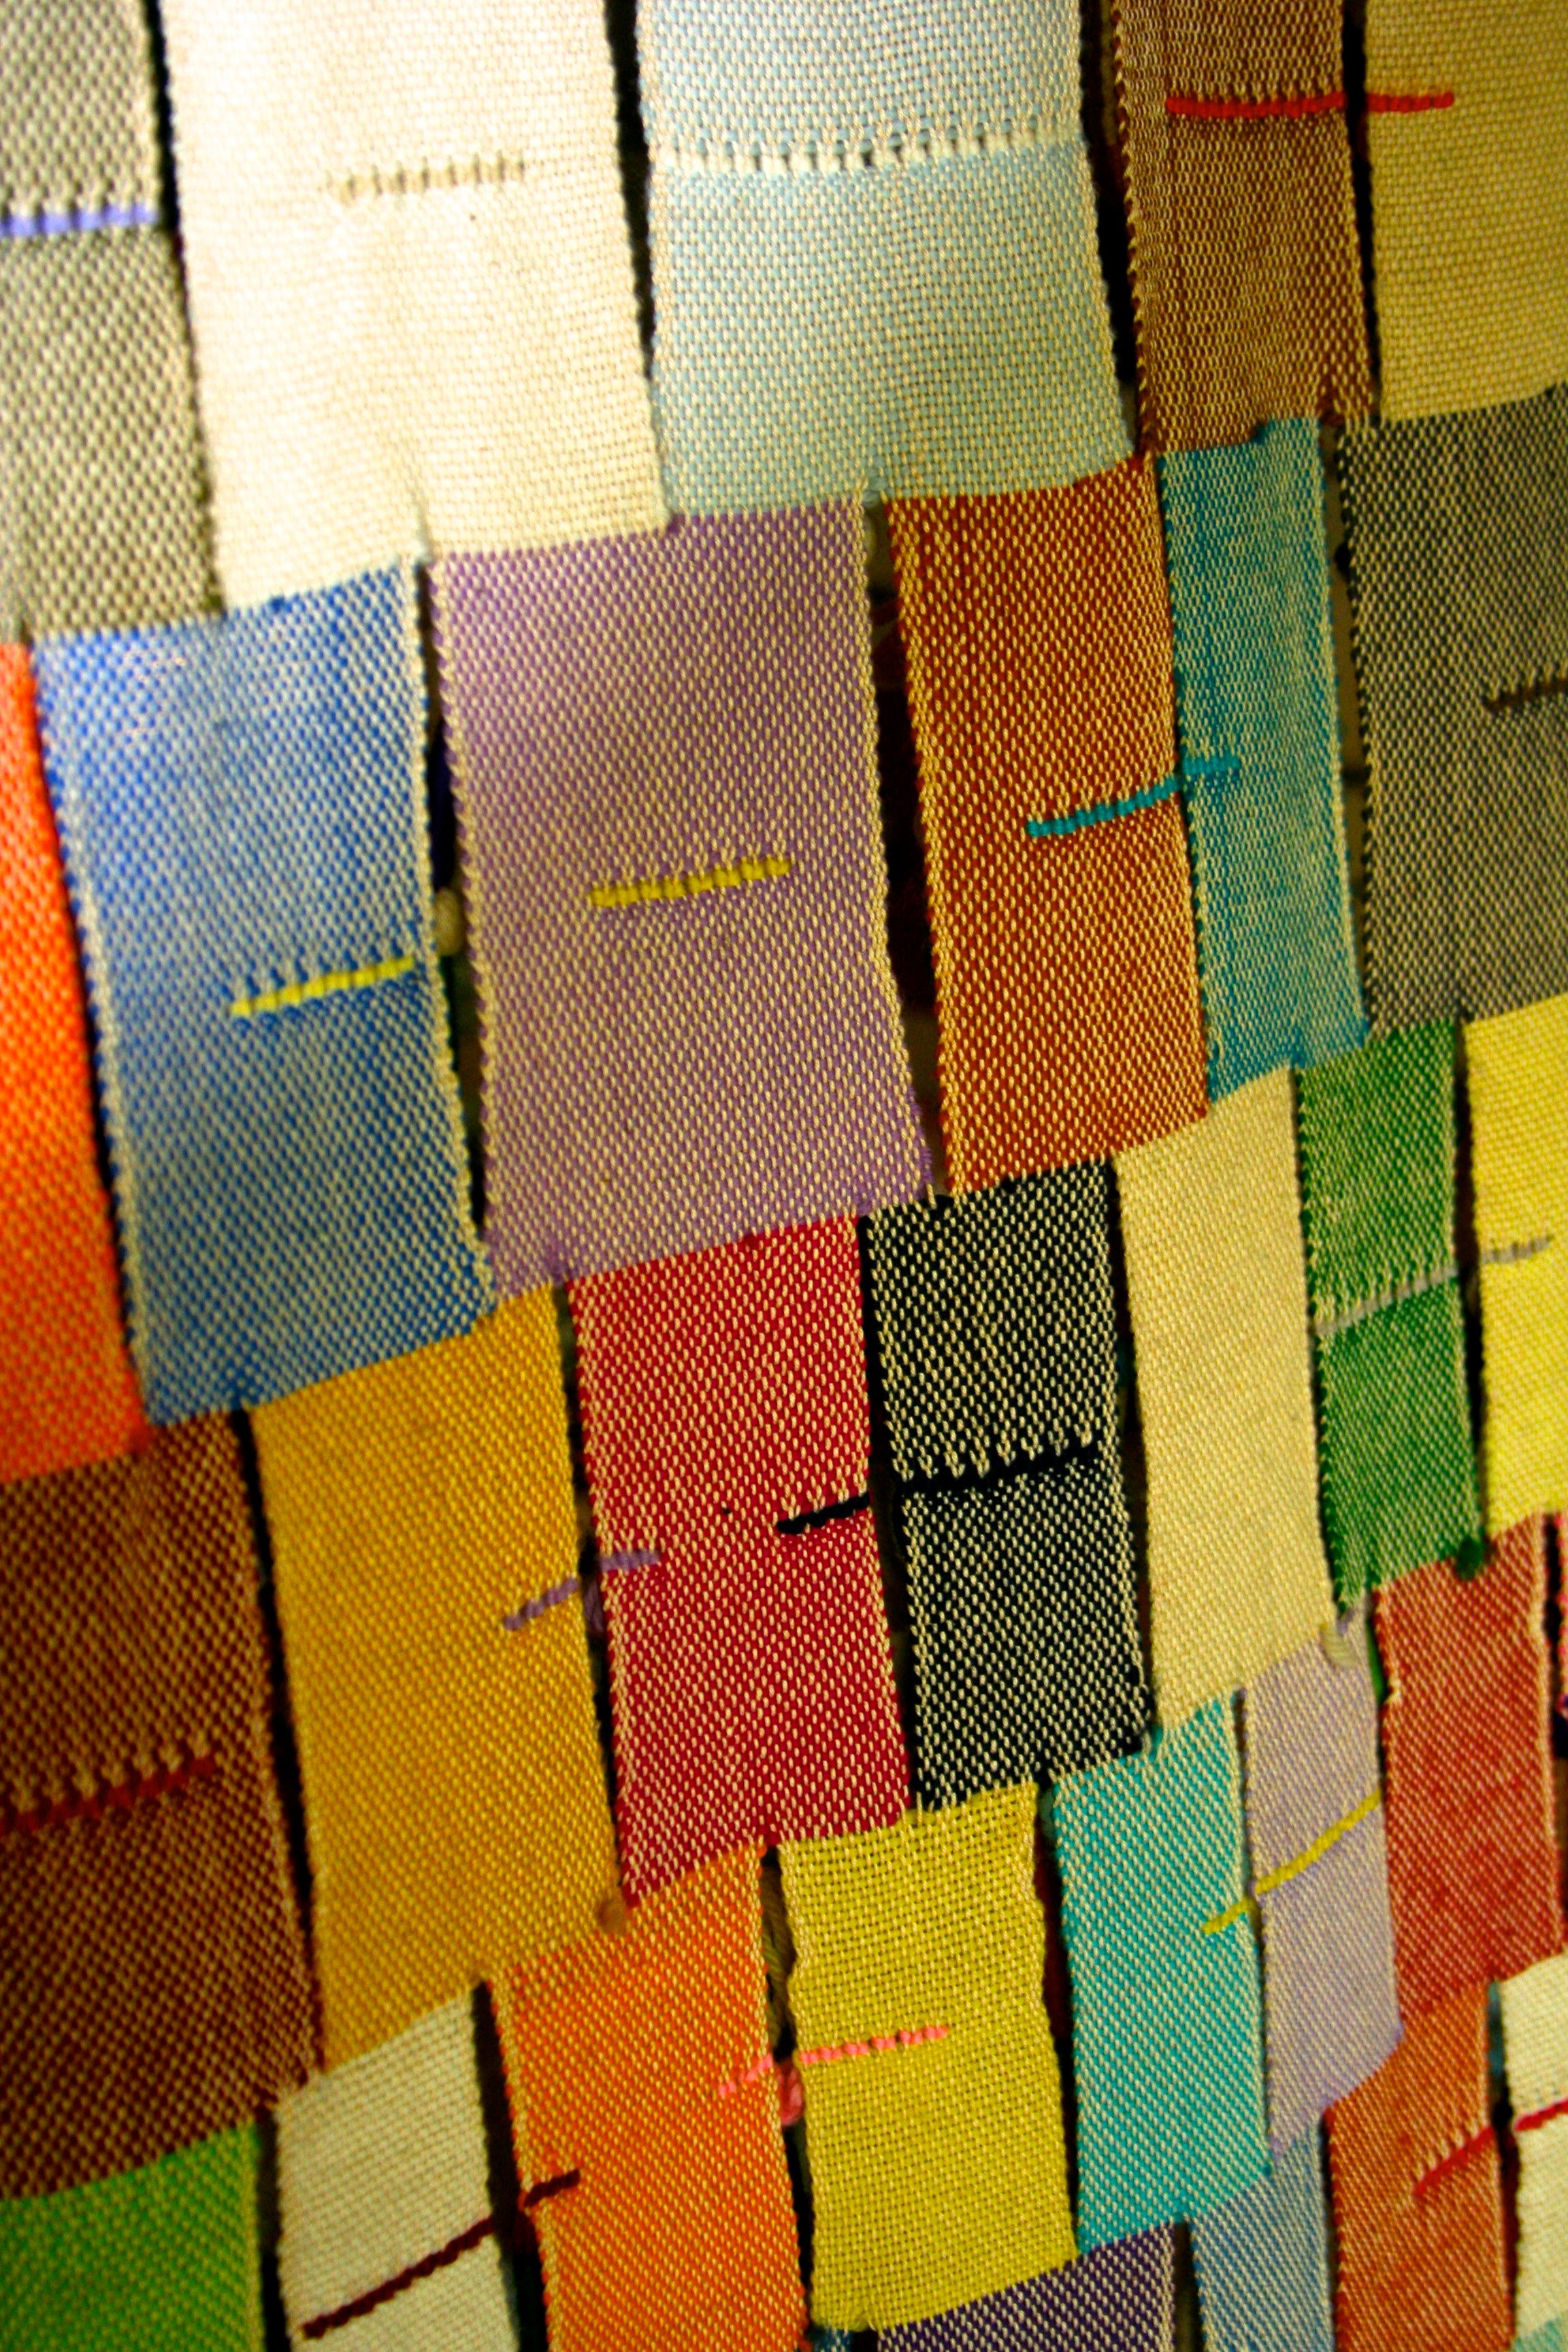 hand woven backing to Angelo Testa wall hanging.